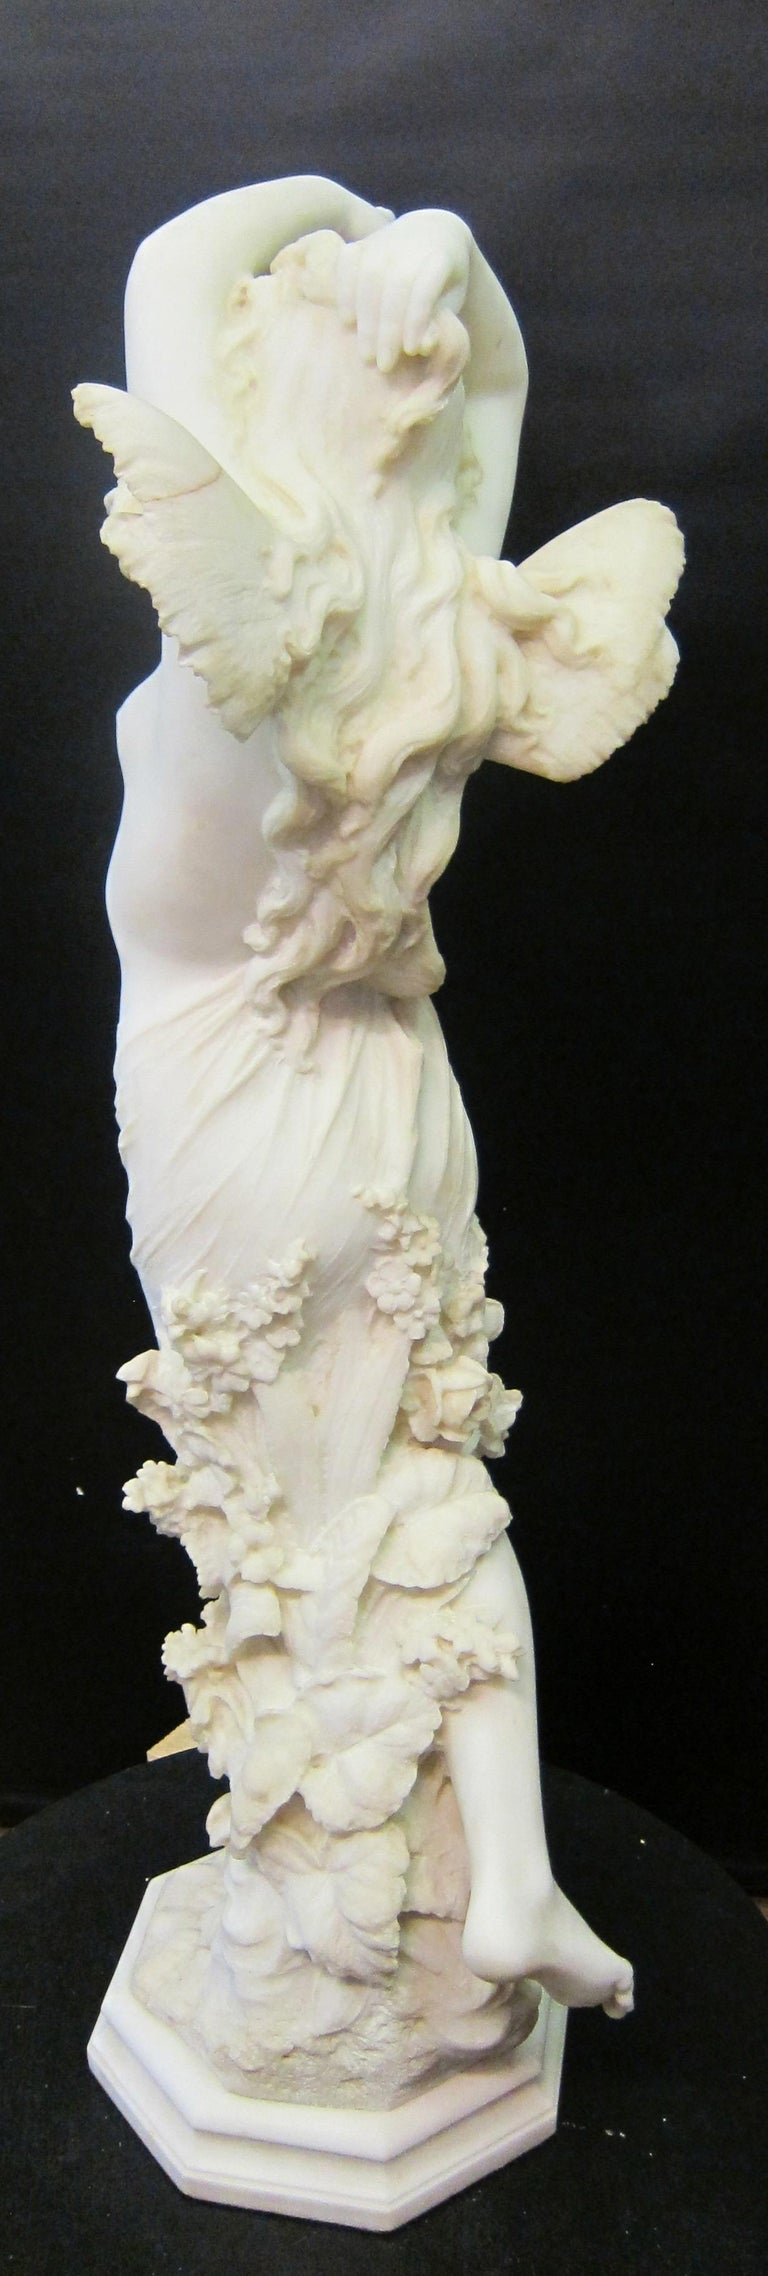 Vintage Art Nouveau Marble Sculpture For Sale 3